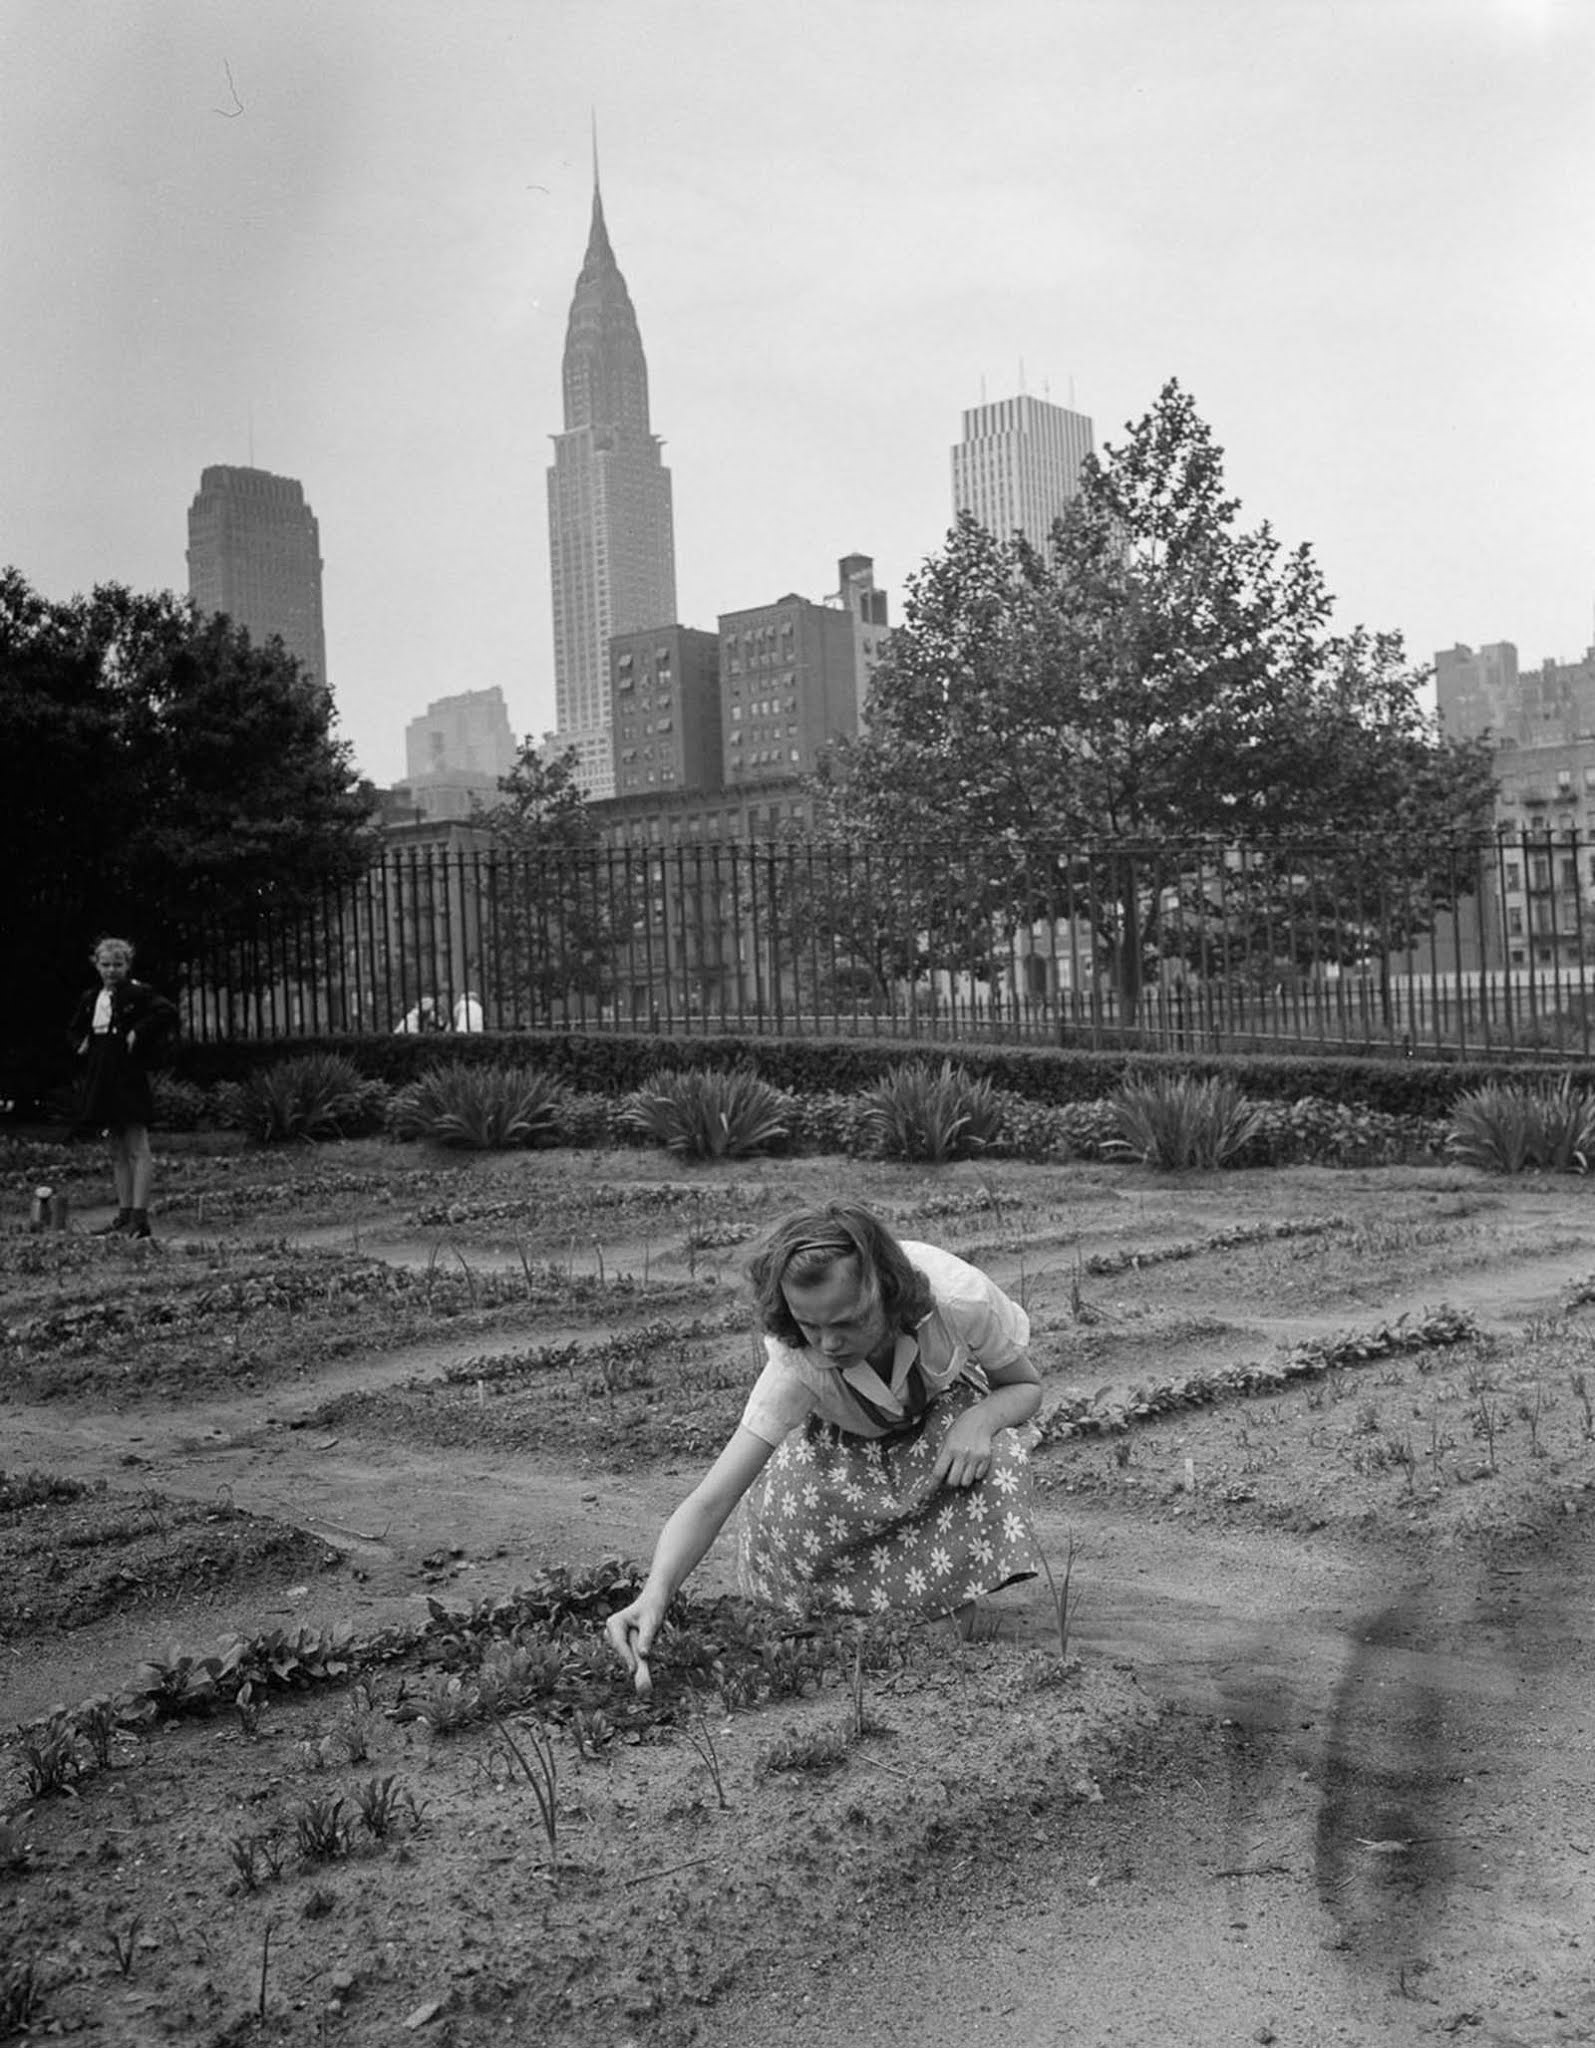 A girl tends a victory garden at a school on 1st Avenue. Victory gardens, also called war gardens or food gardens for defense, were vegetable, fruit, and herb gardens planted at public parks in support of the Allied troops.